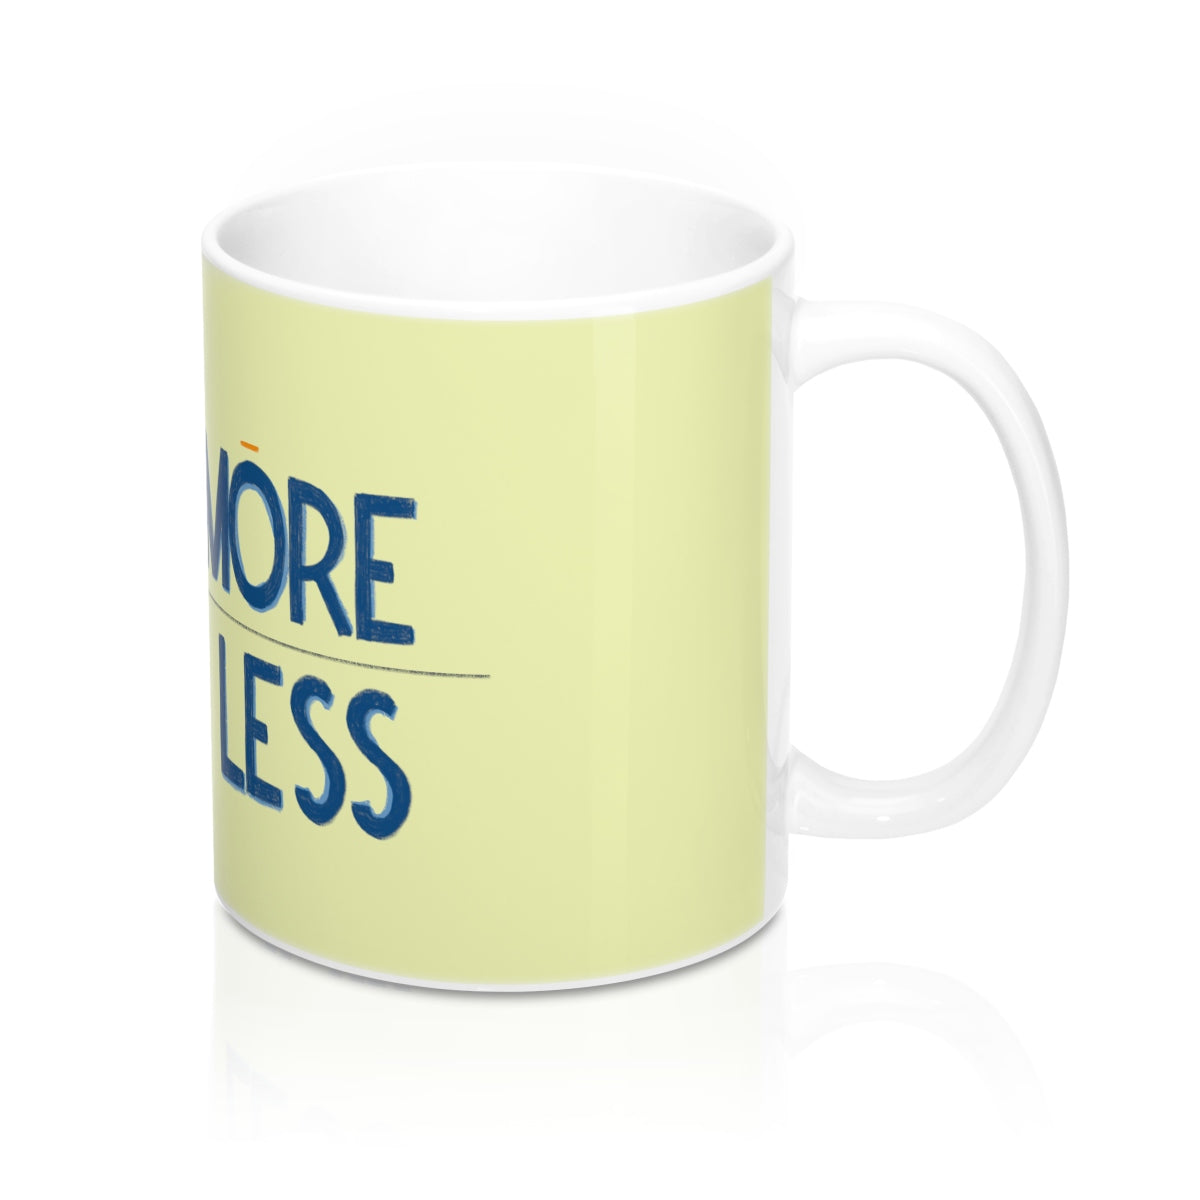 Dance More Worry Less, a mug for all you dance lovers.